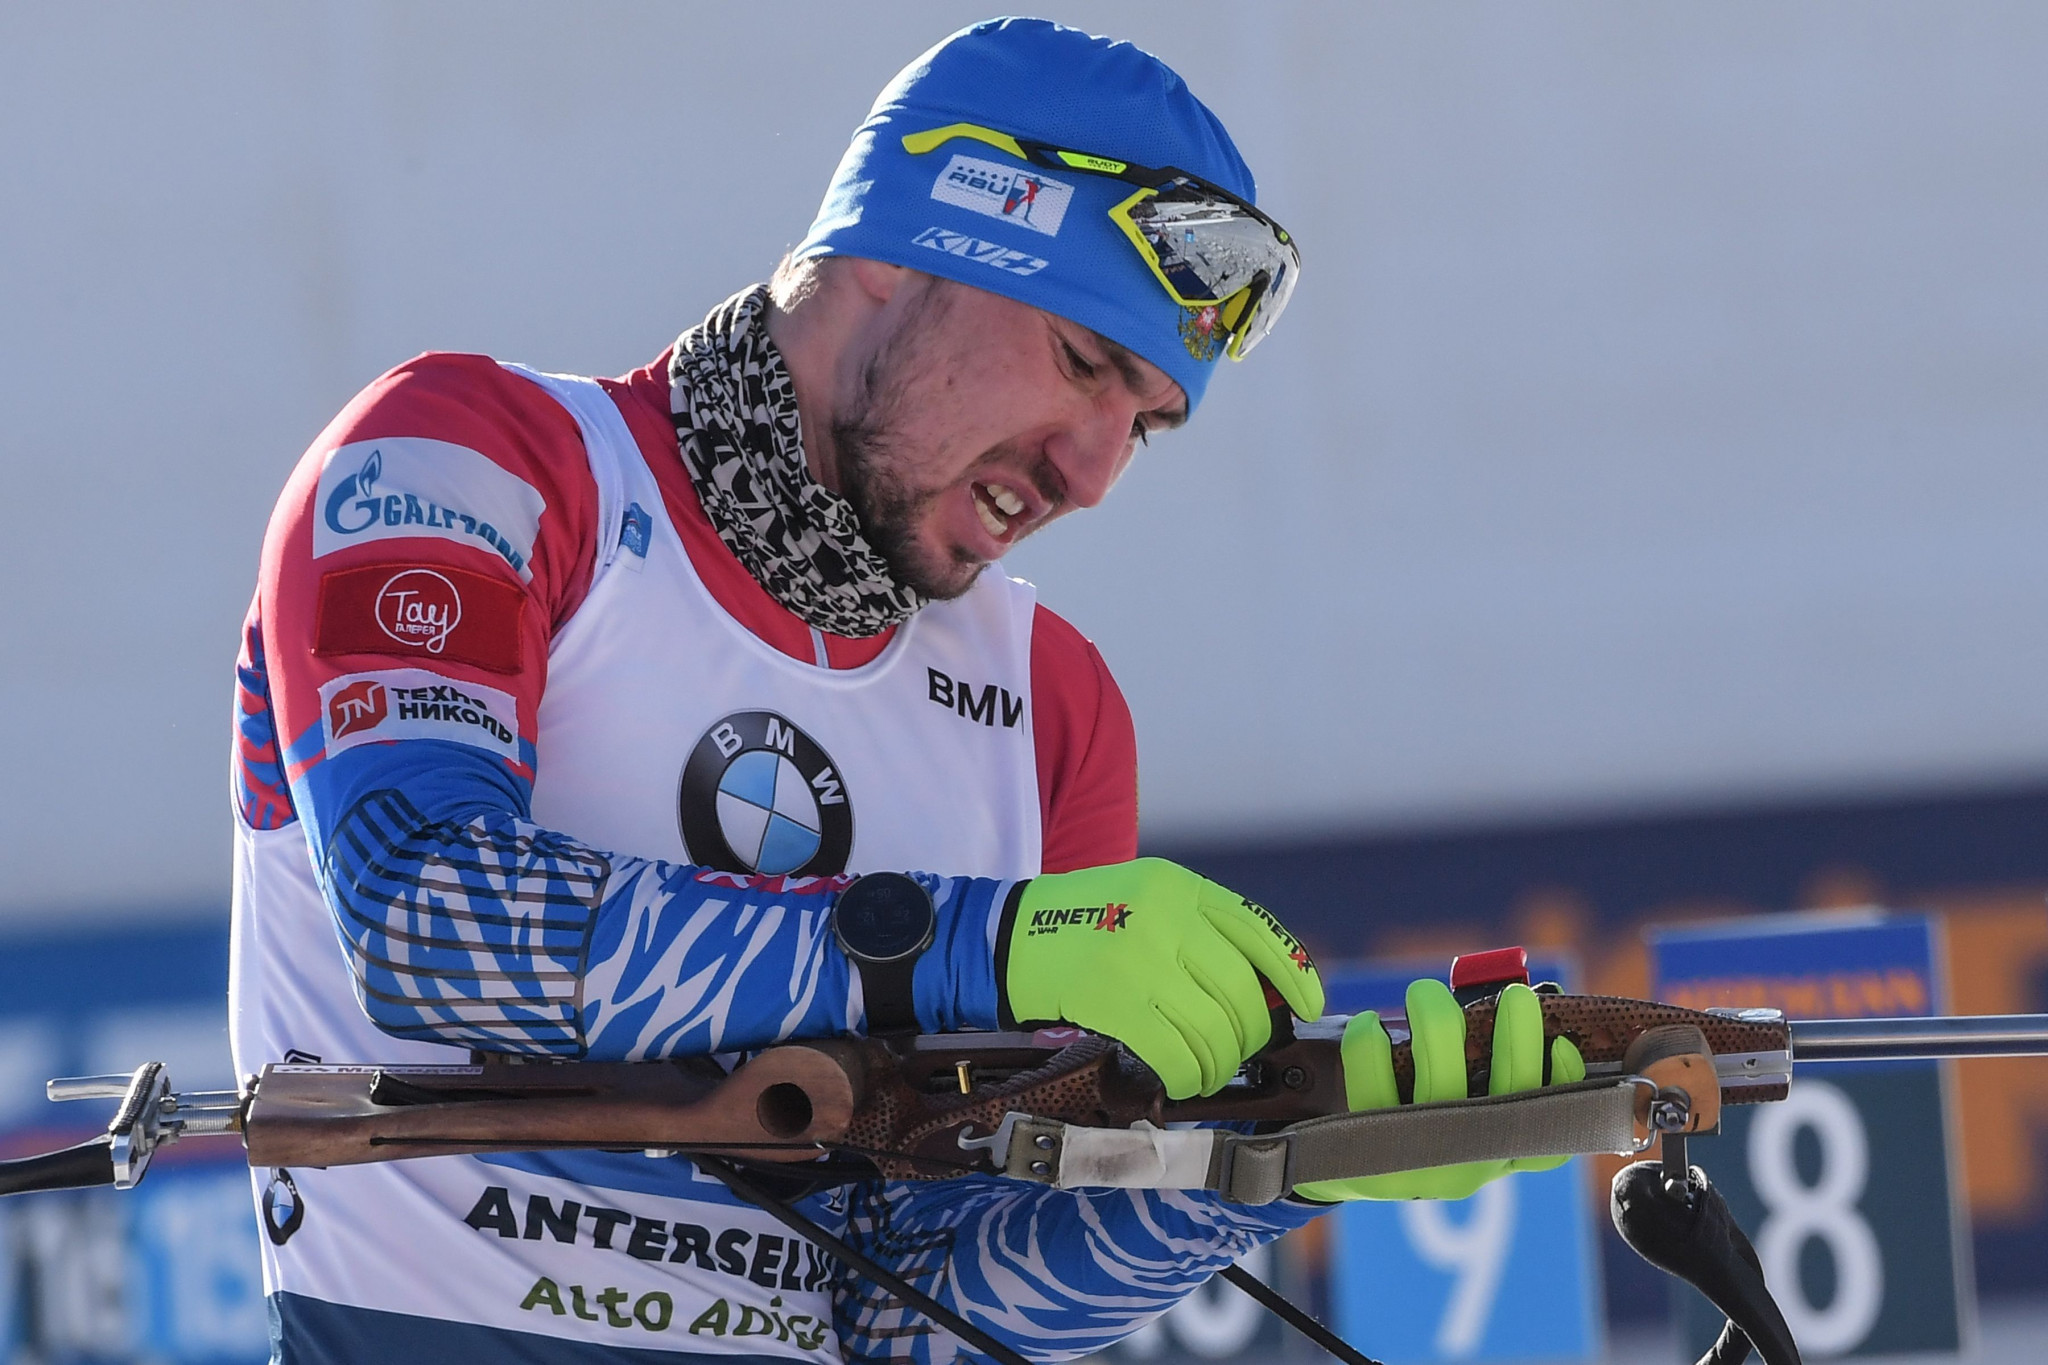 IBU denies instructing Italian authorities to conduct raid on Loginov